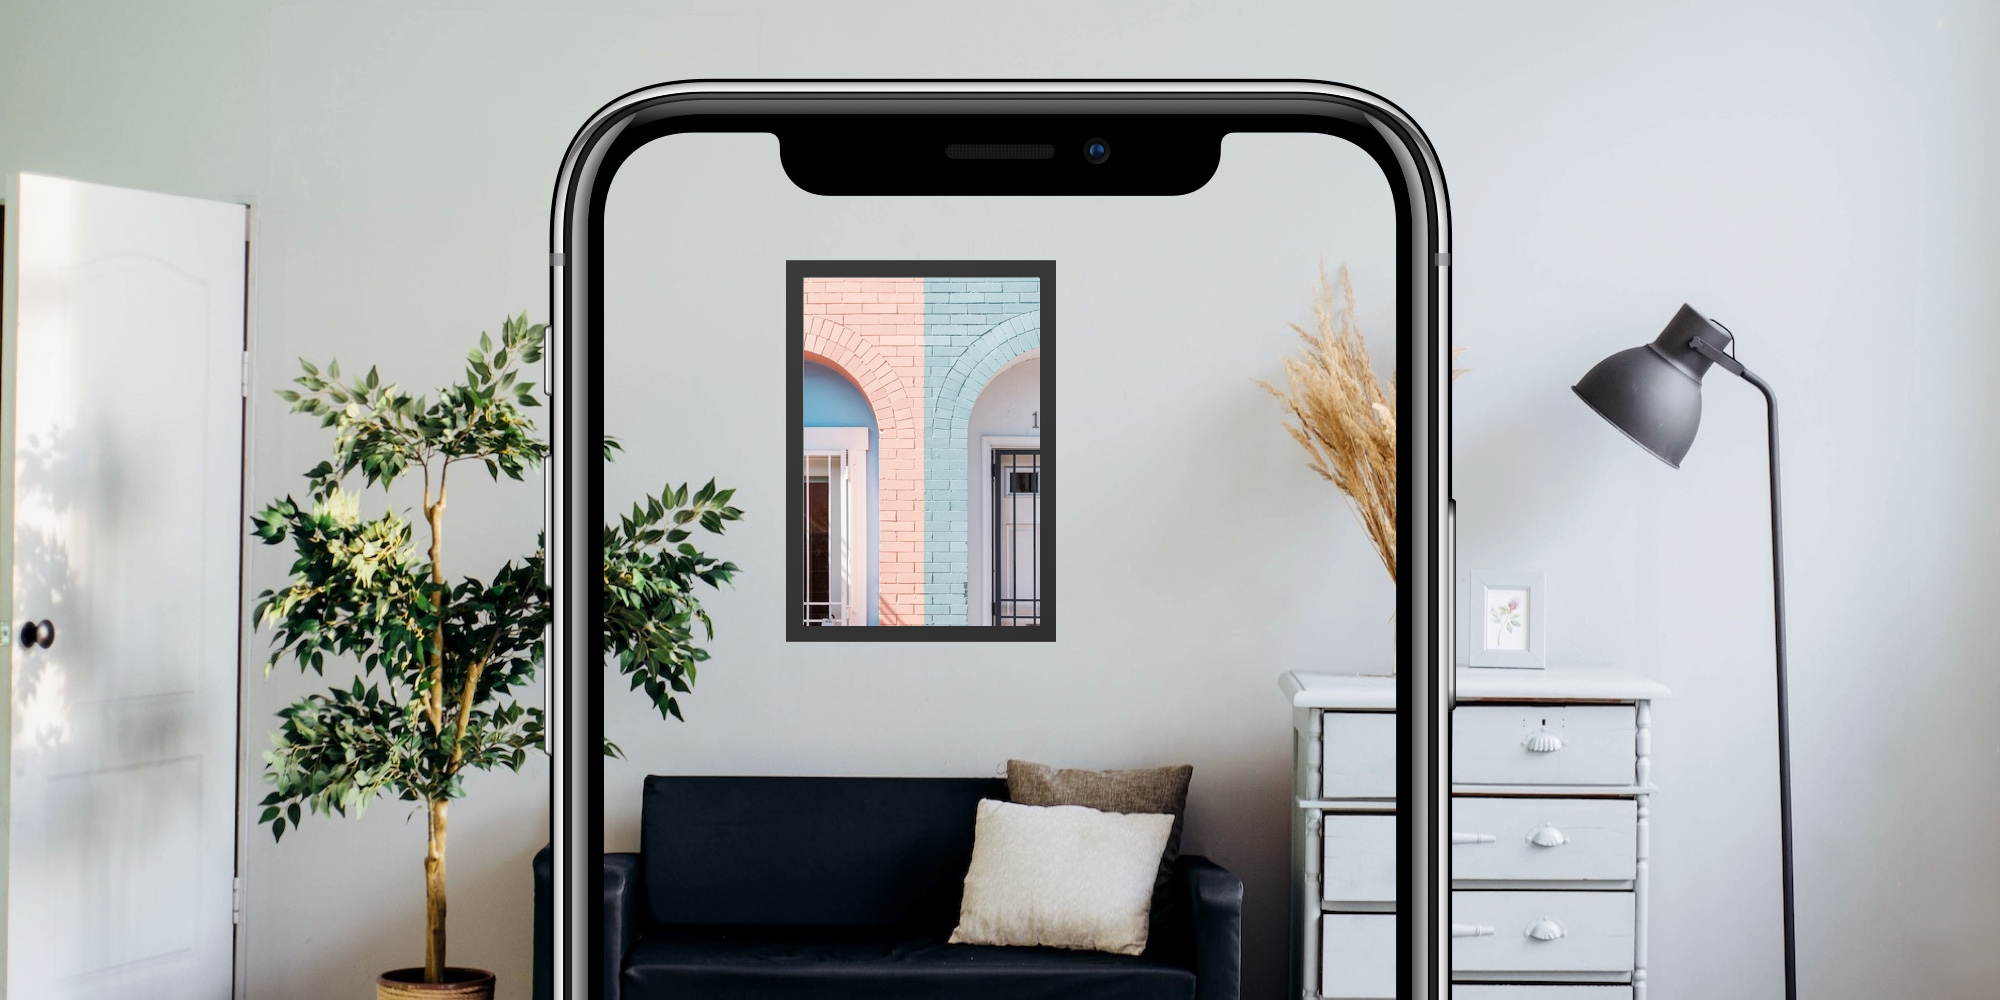 Mobile app placing picture on wall using Augmented reality